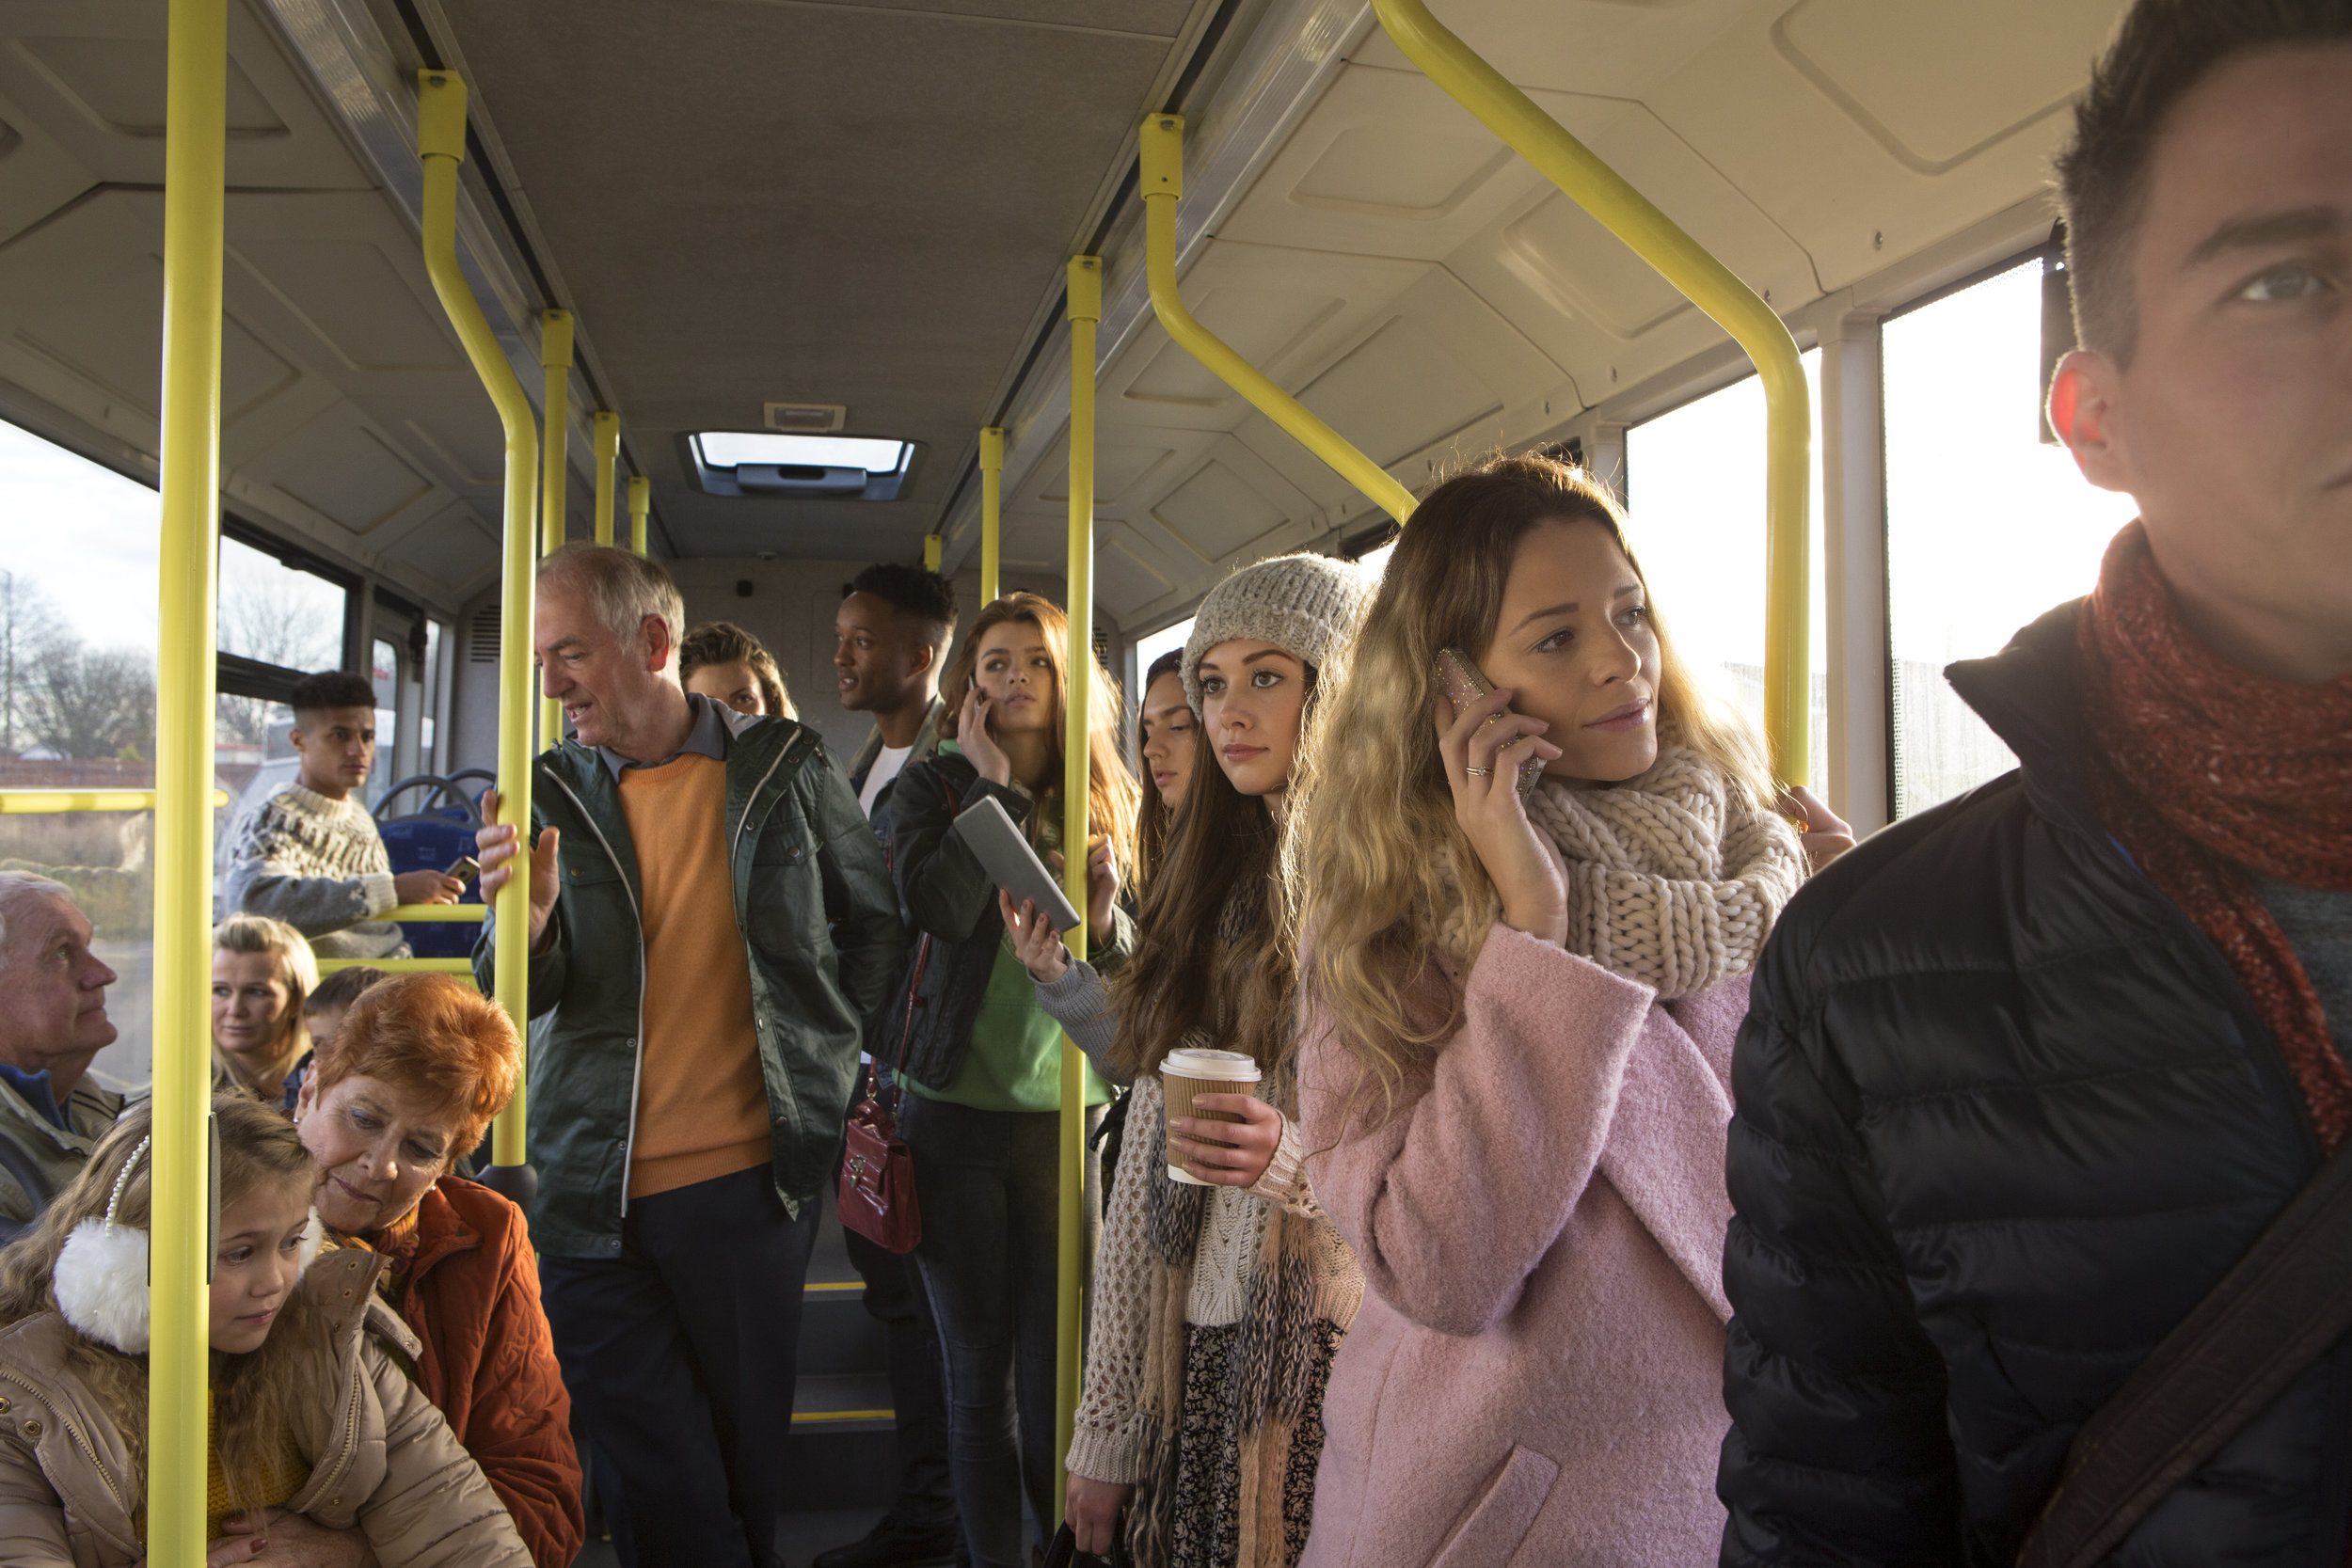 People on a bus  -  Shutterstock.com